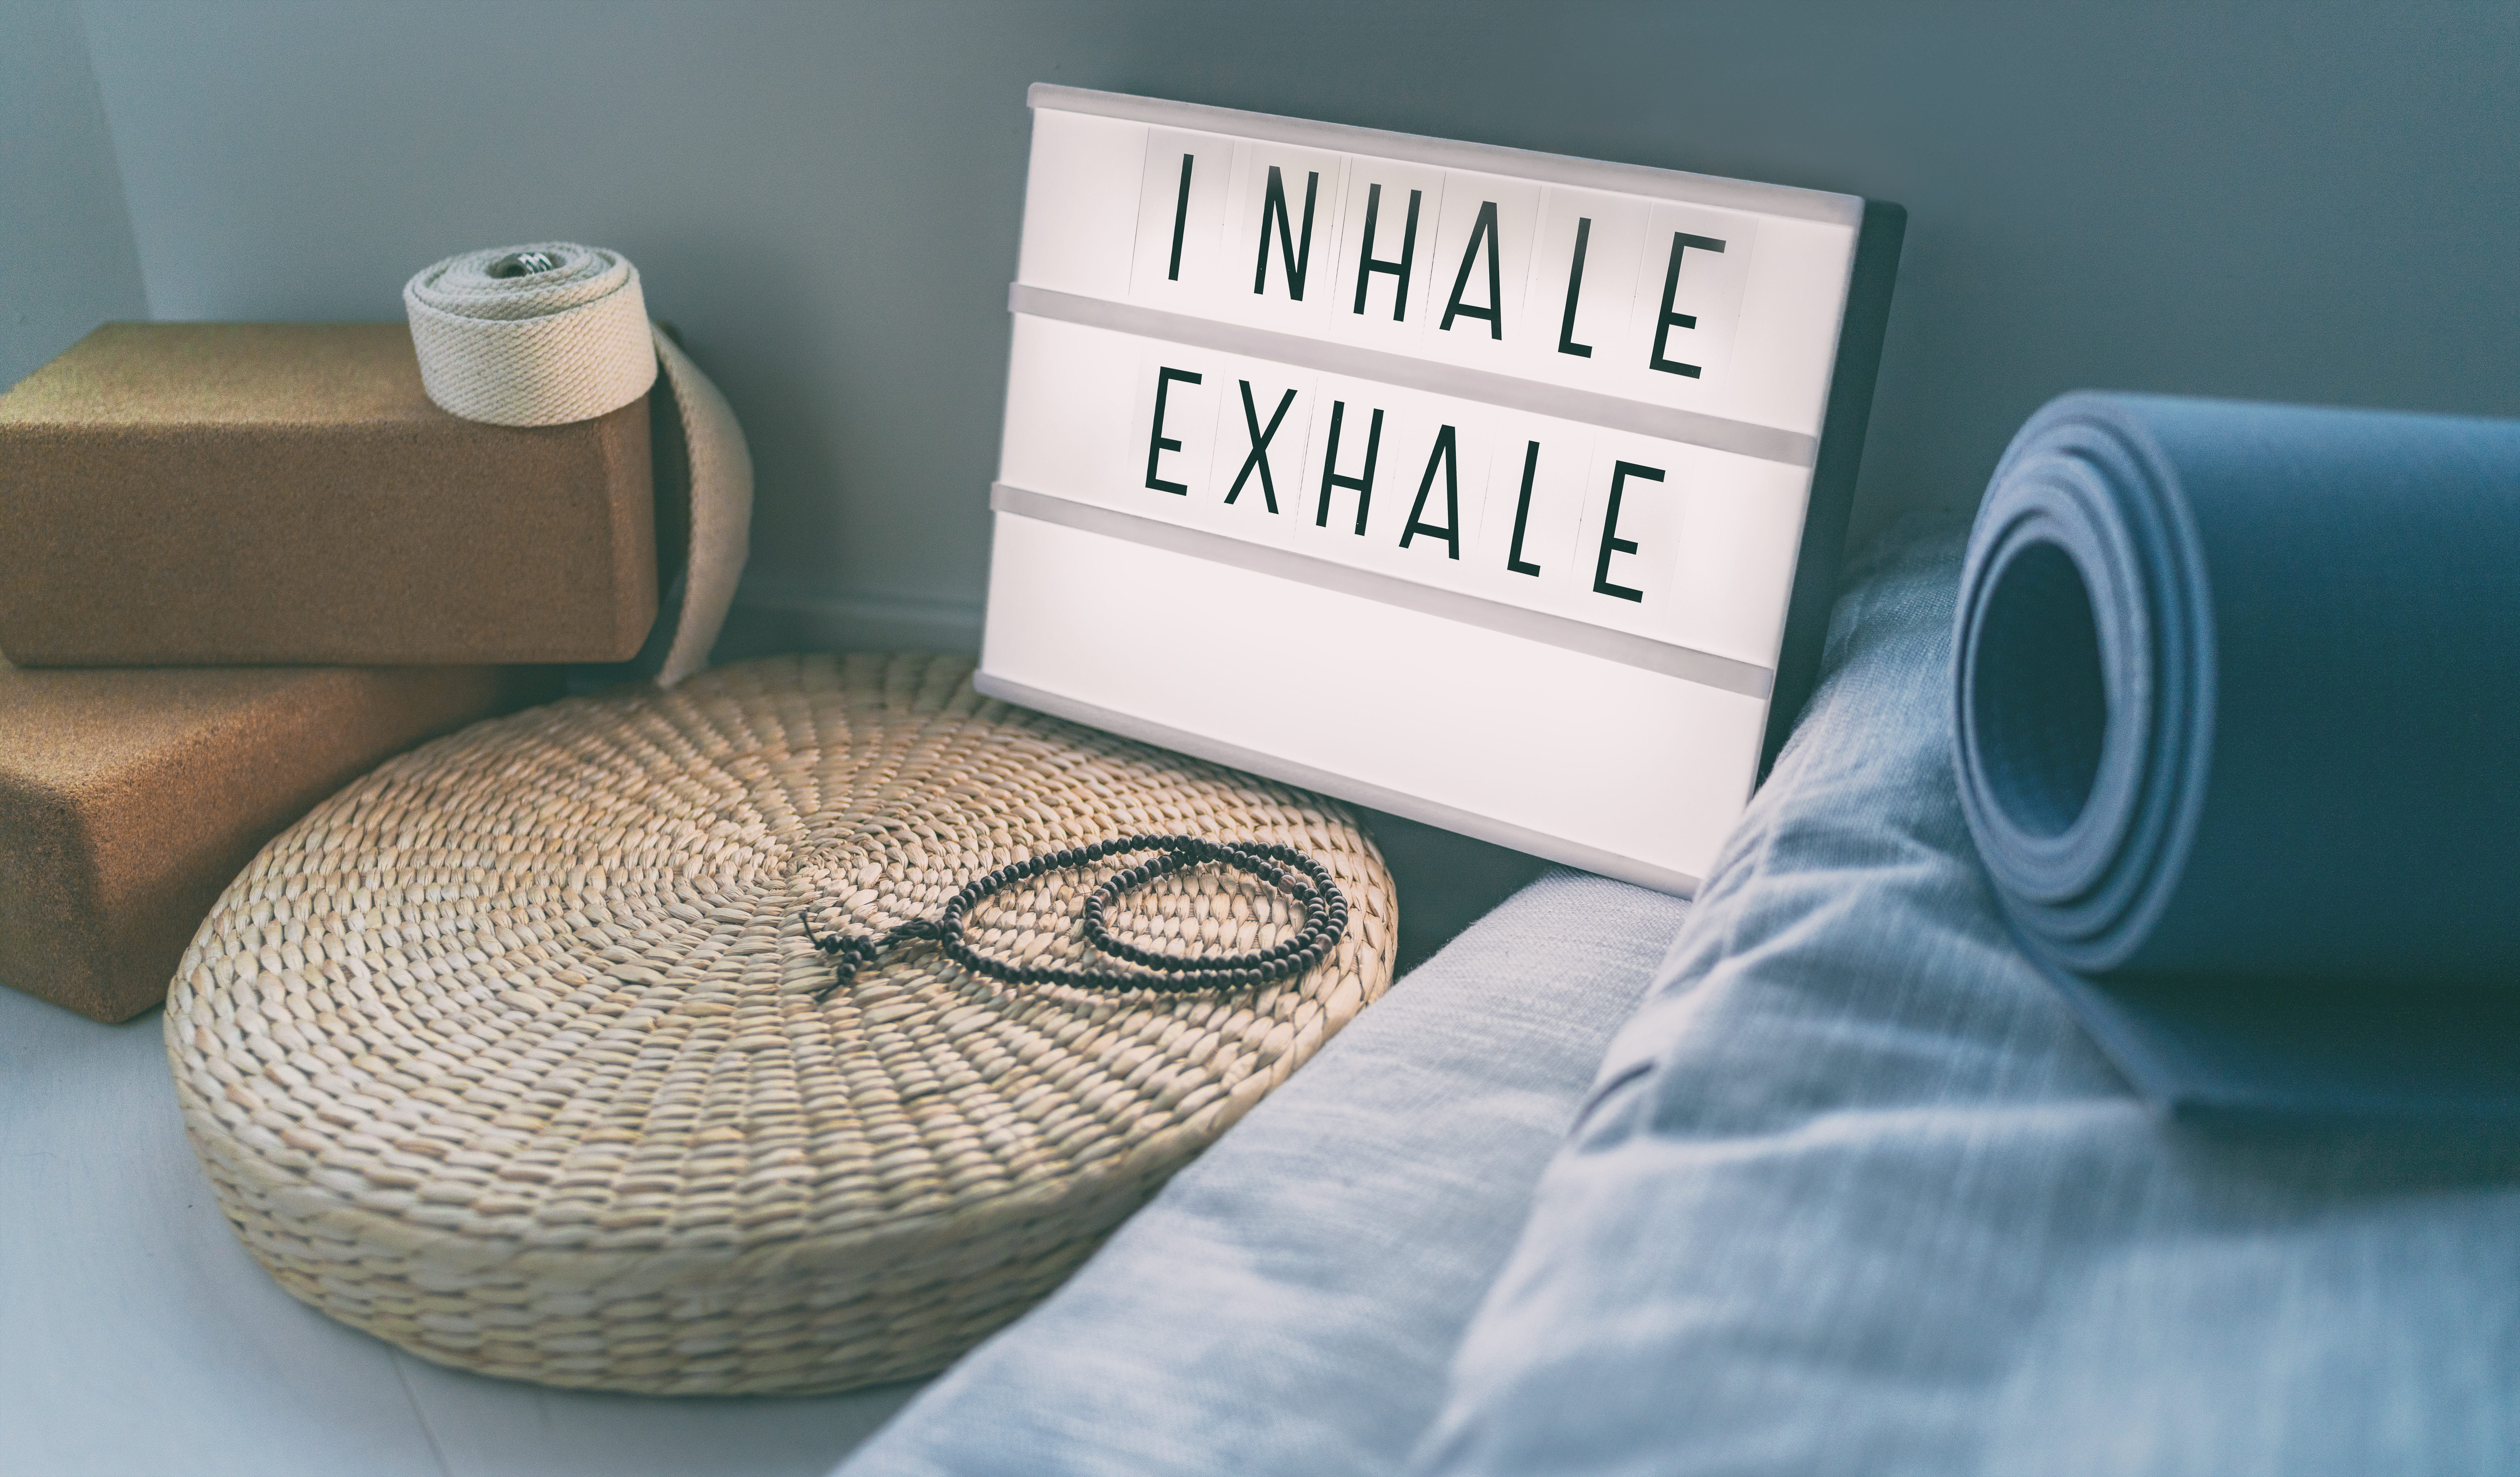 sign that says inhale exhale next to commonly used yoga equipment like a yoga mat